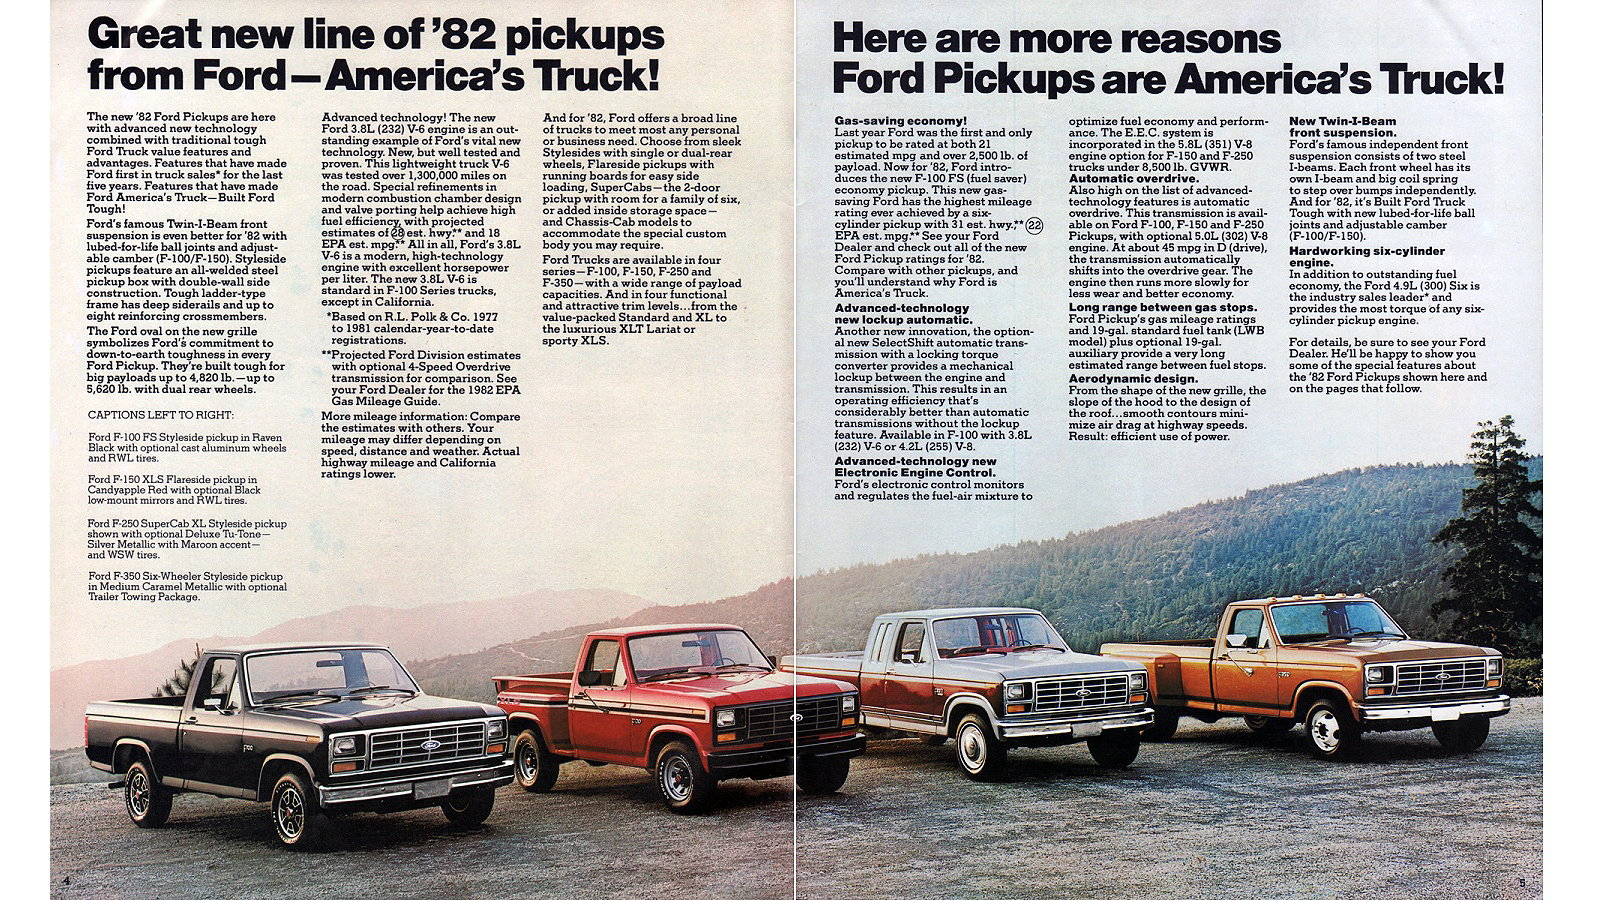 1982-3 Ford F-100/F-150 (3.8l/manual 4sp) - 23 city/33 highway